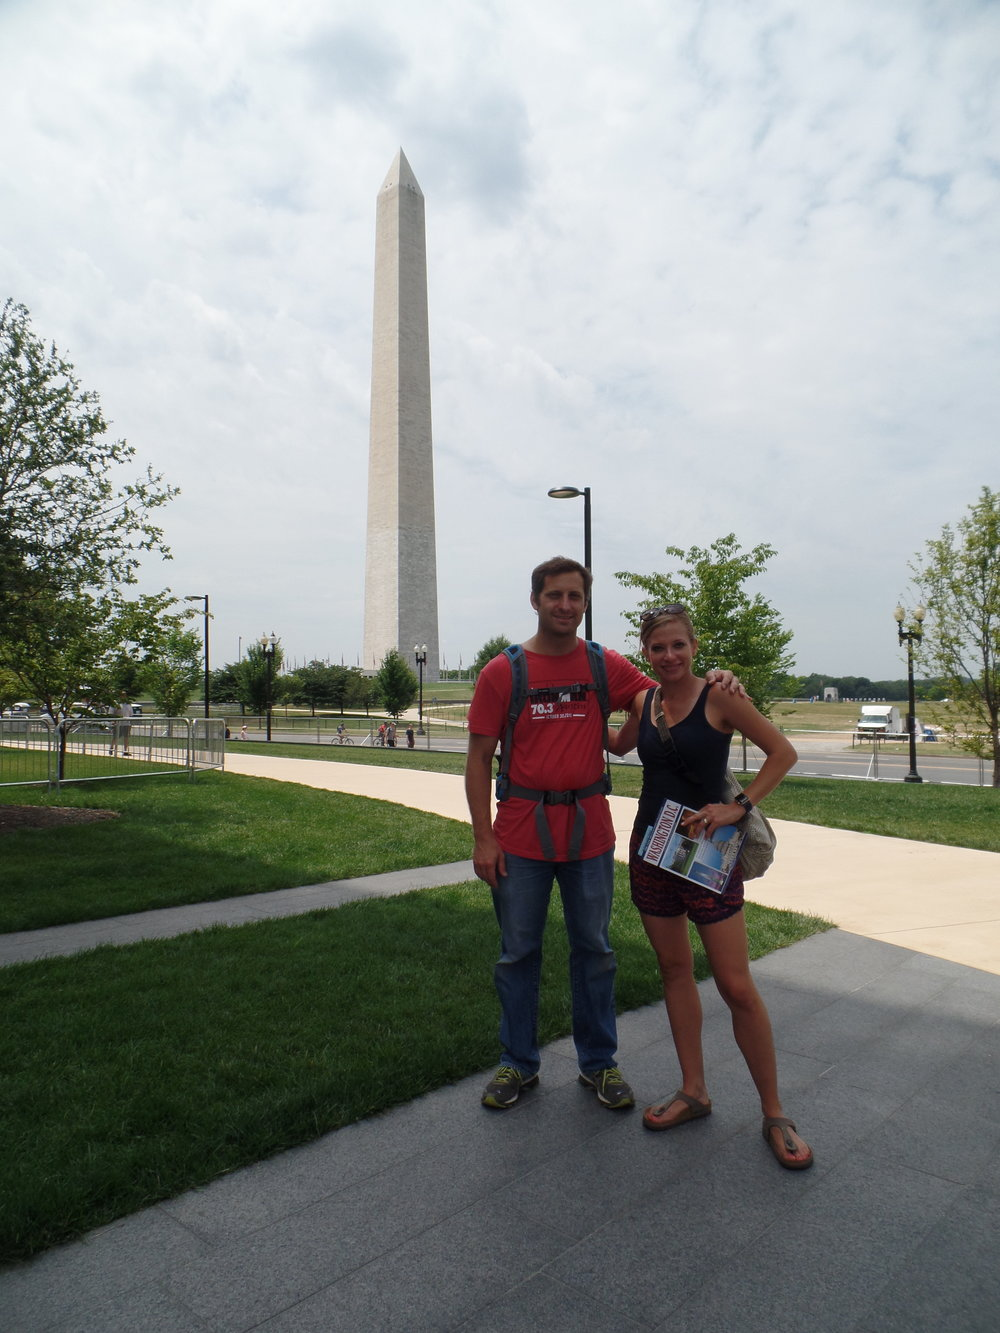 Zach and I in front of the Washington Monument.